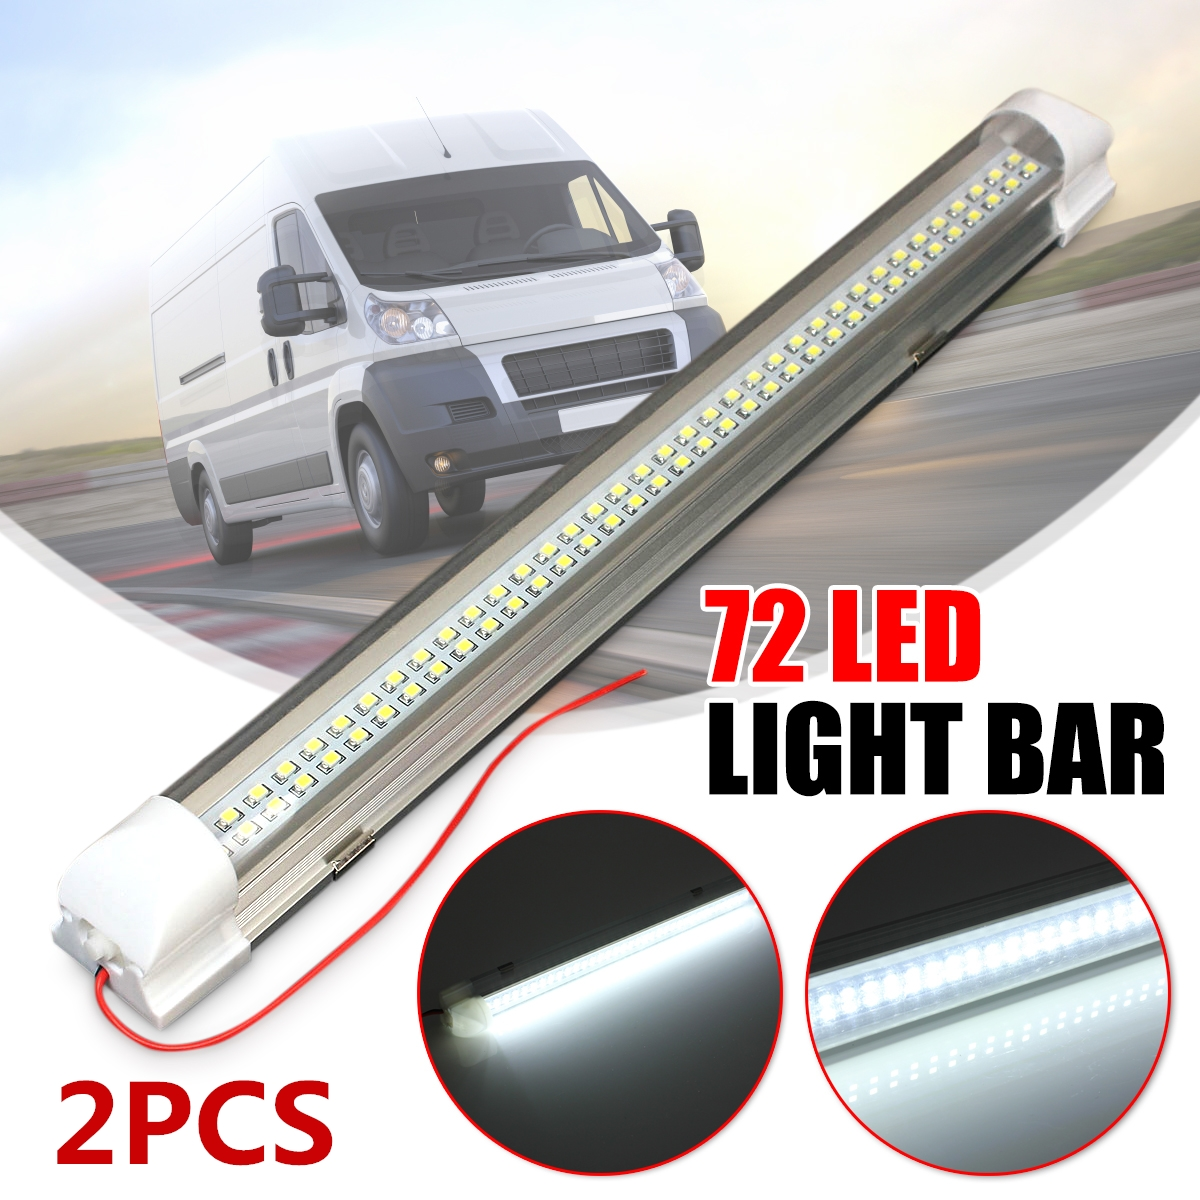 2pcs 12V 72 LED Car Interior White Strip Lights Bar Lamp Van Caravan ON OFF цены онлайн